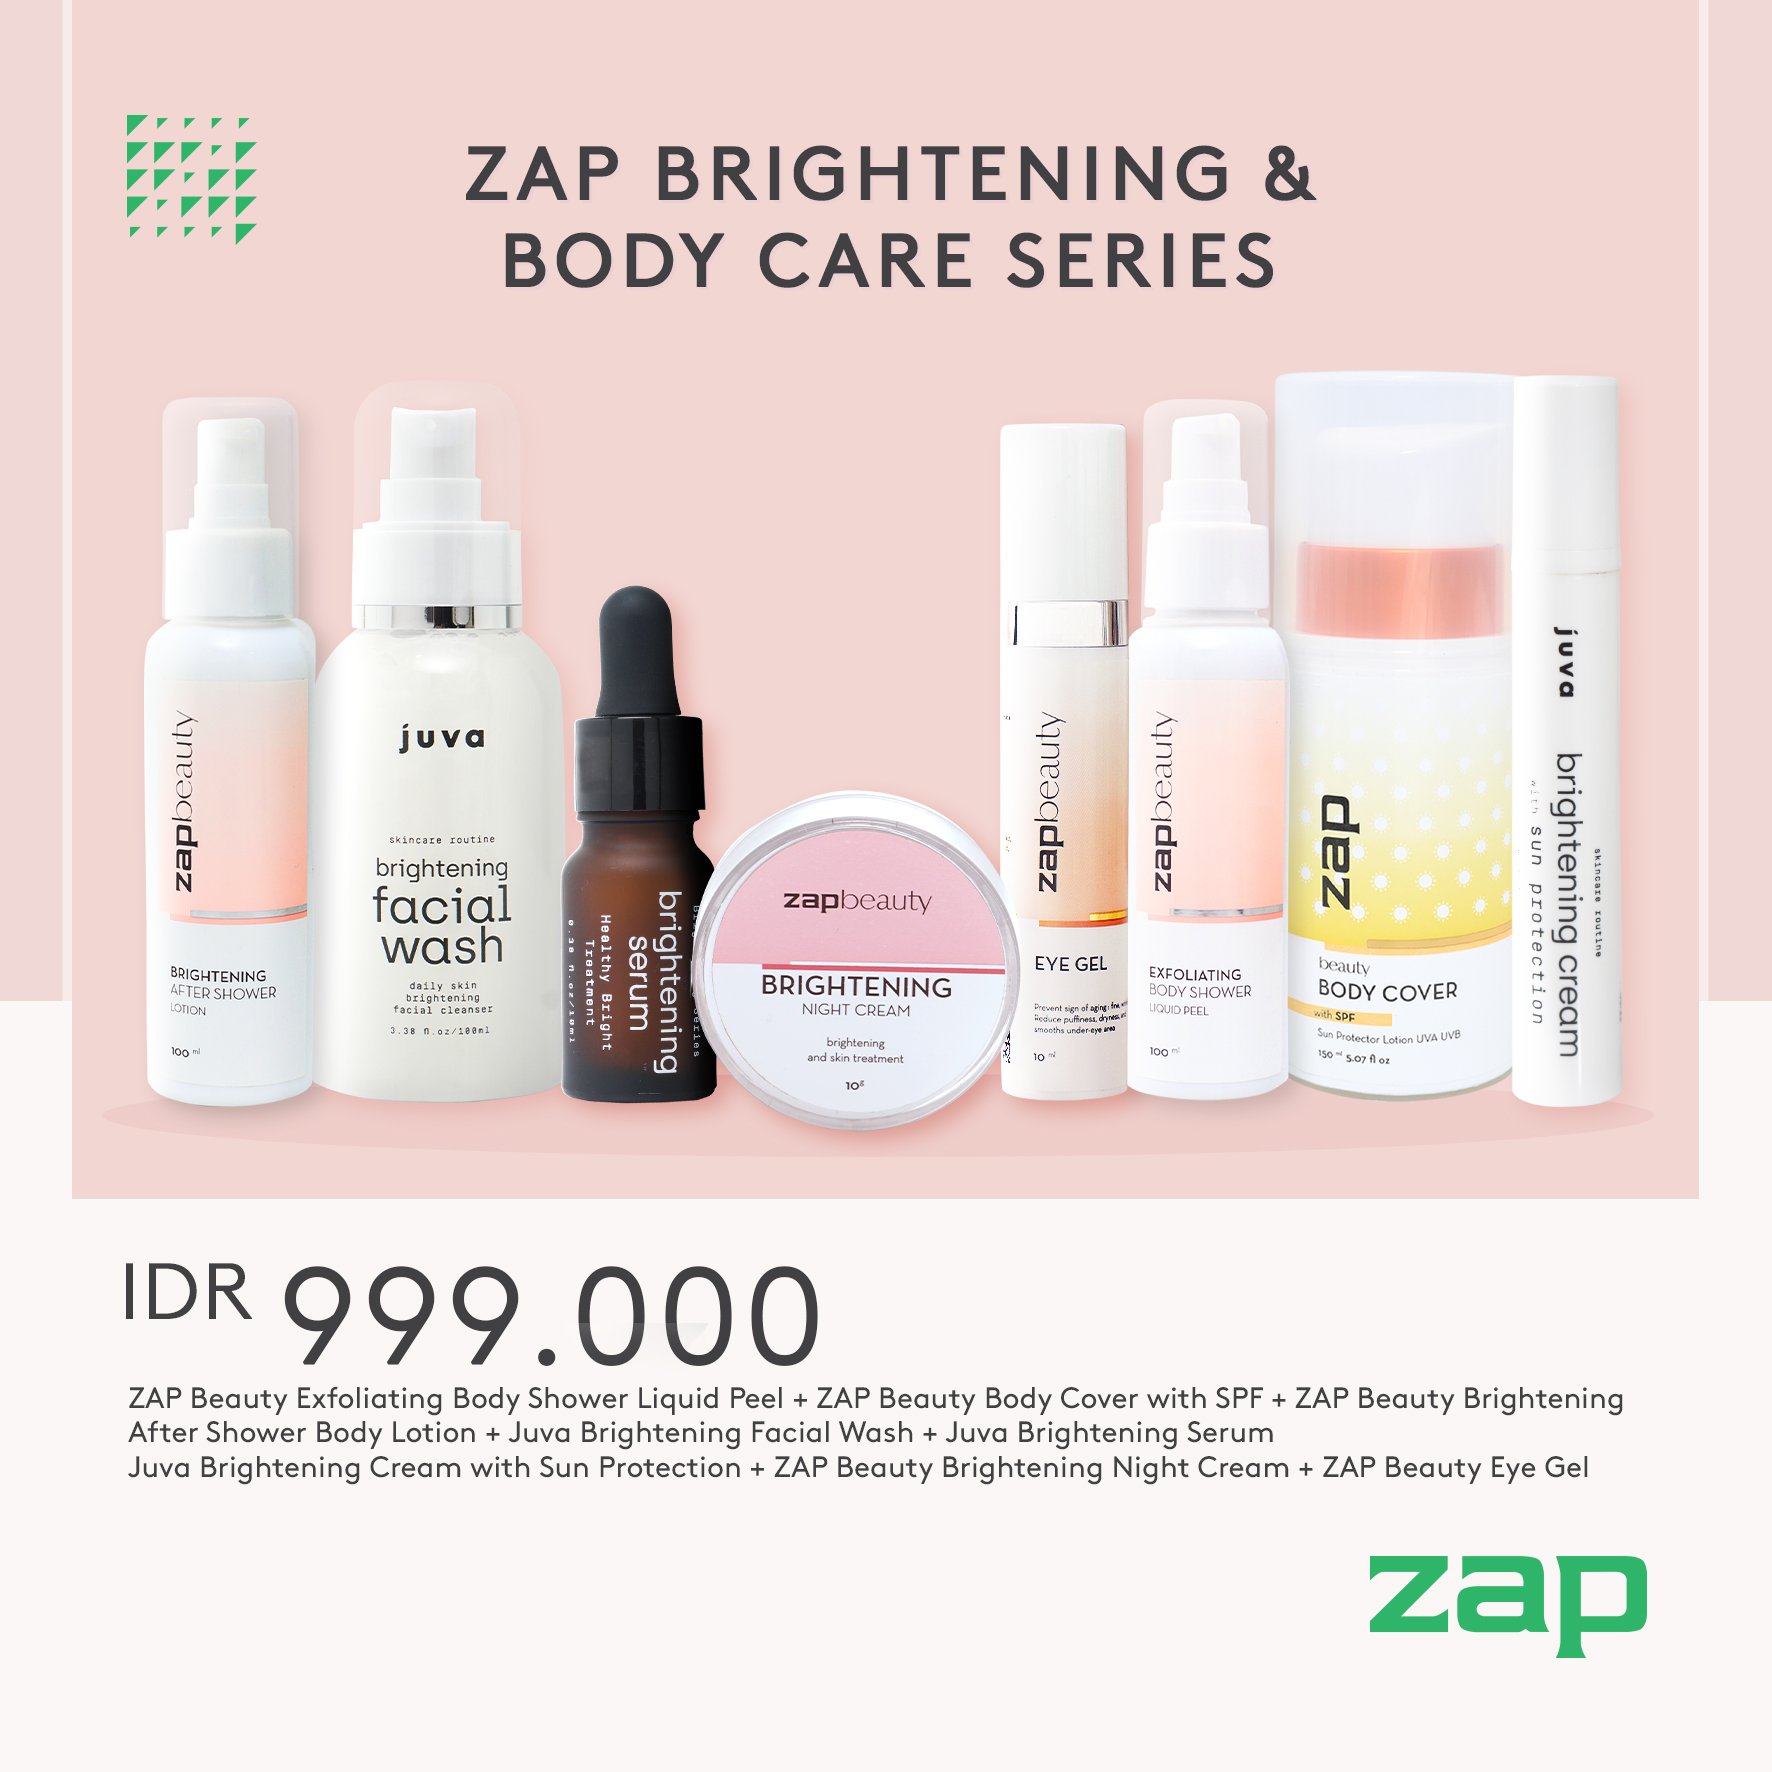 ZAP Brightening and Body Care Series